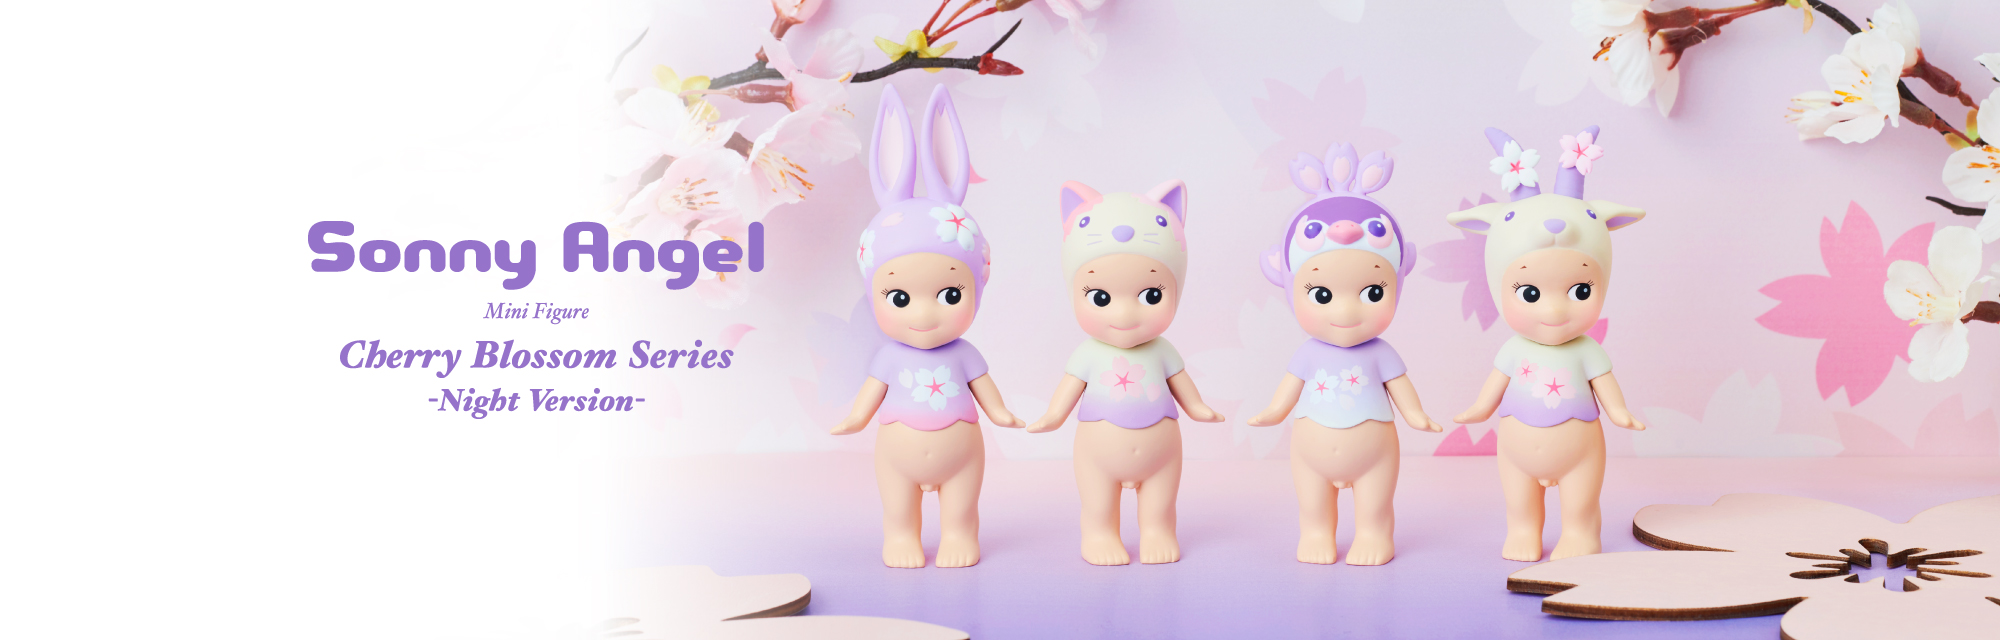 [NEWS] Sonny Angel Cherry Blossom Series -Night Version-🌙 Coming March